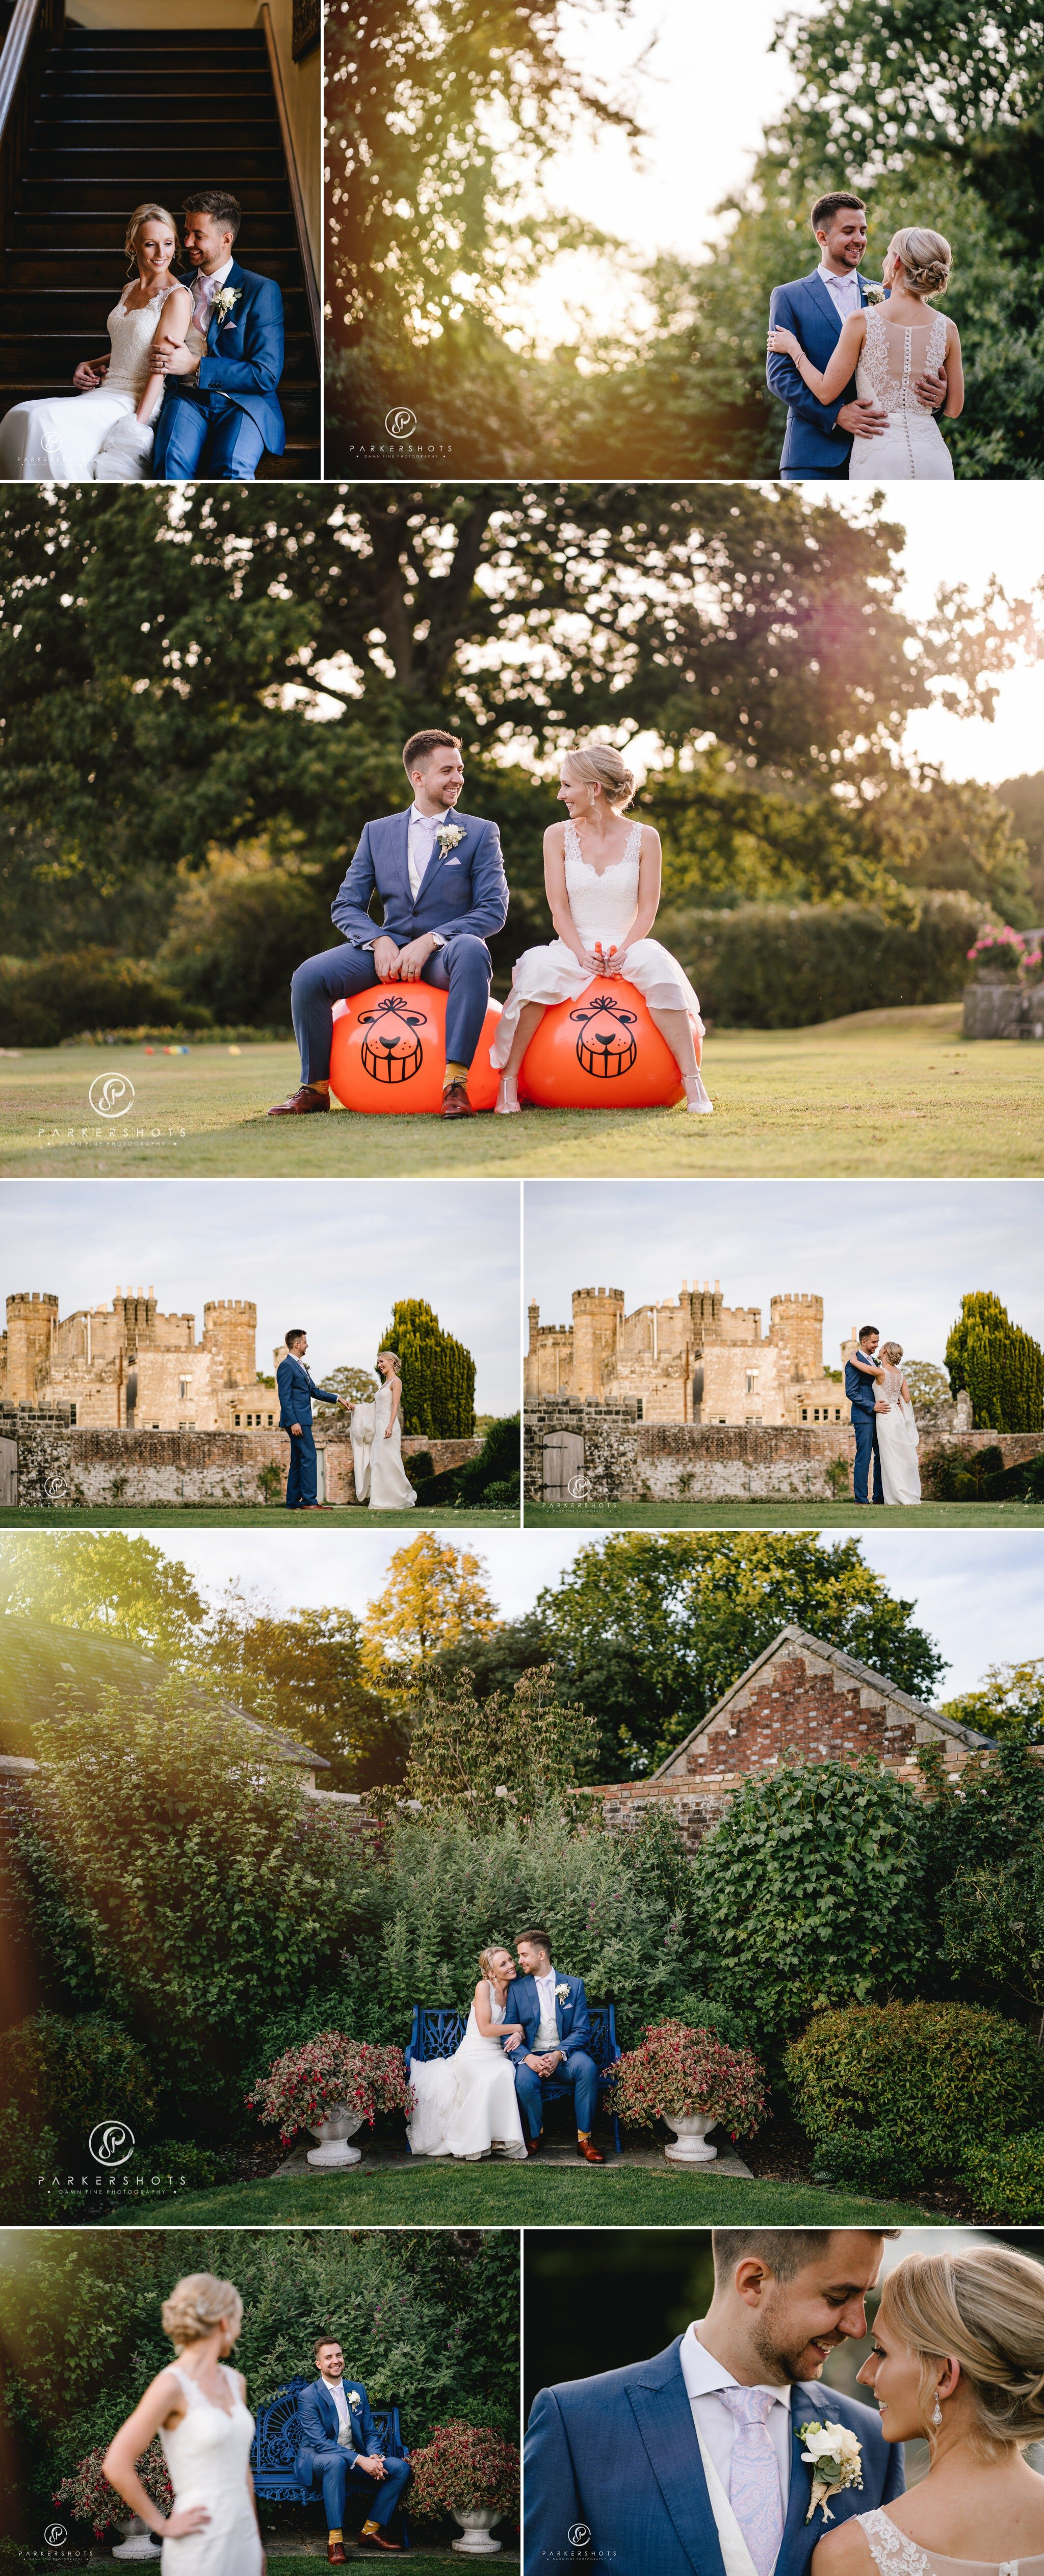 Wadhurst Castle Wedding Photographer Portraits